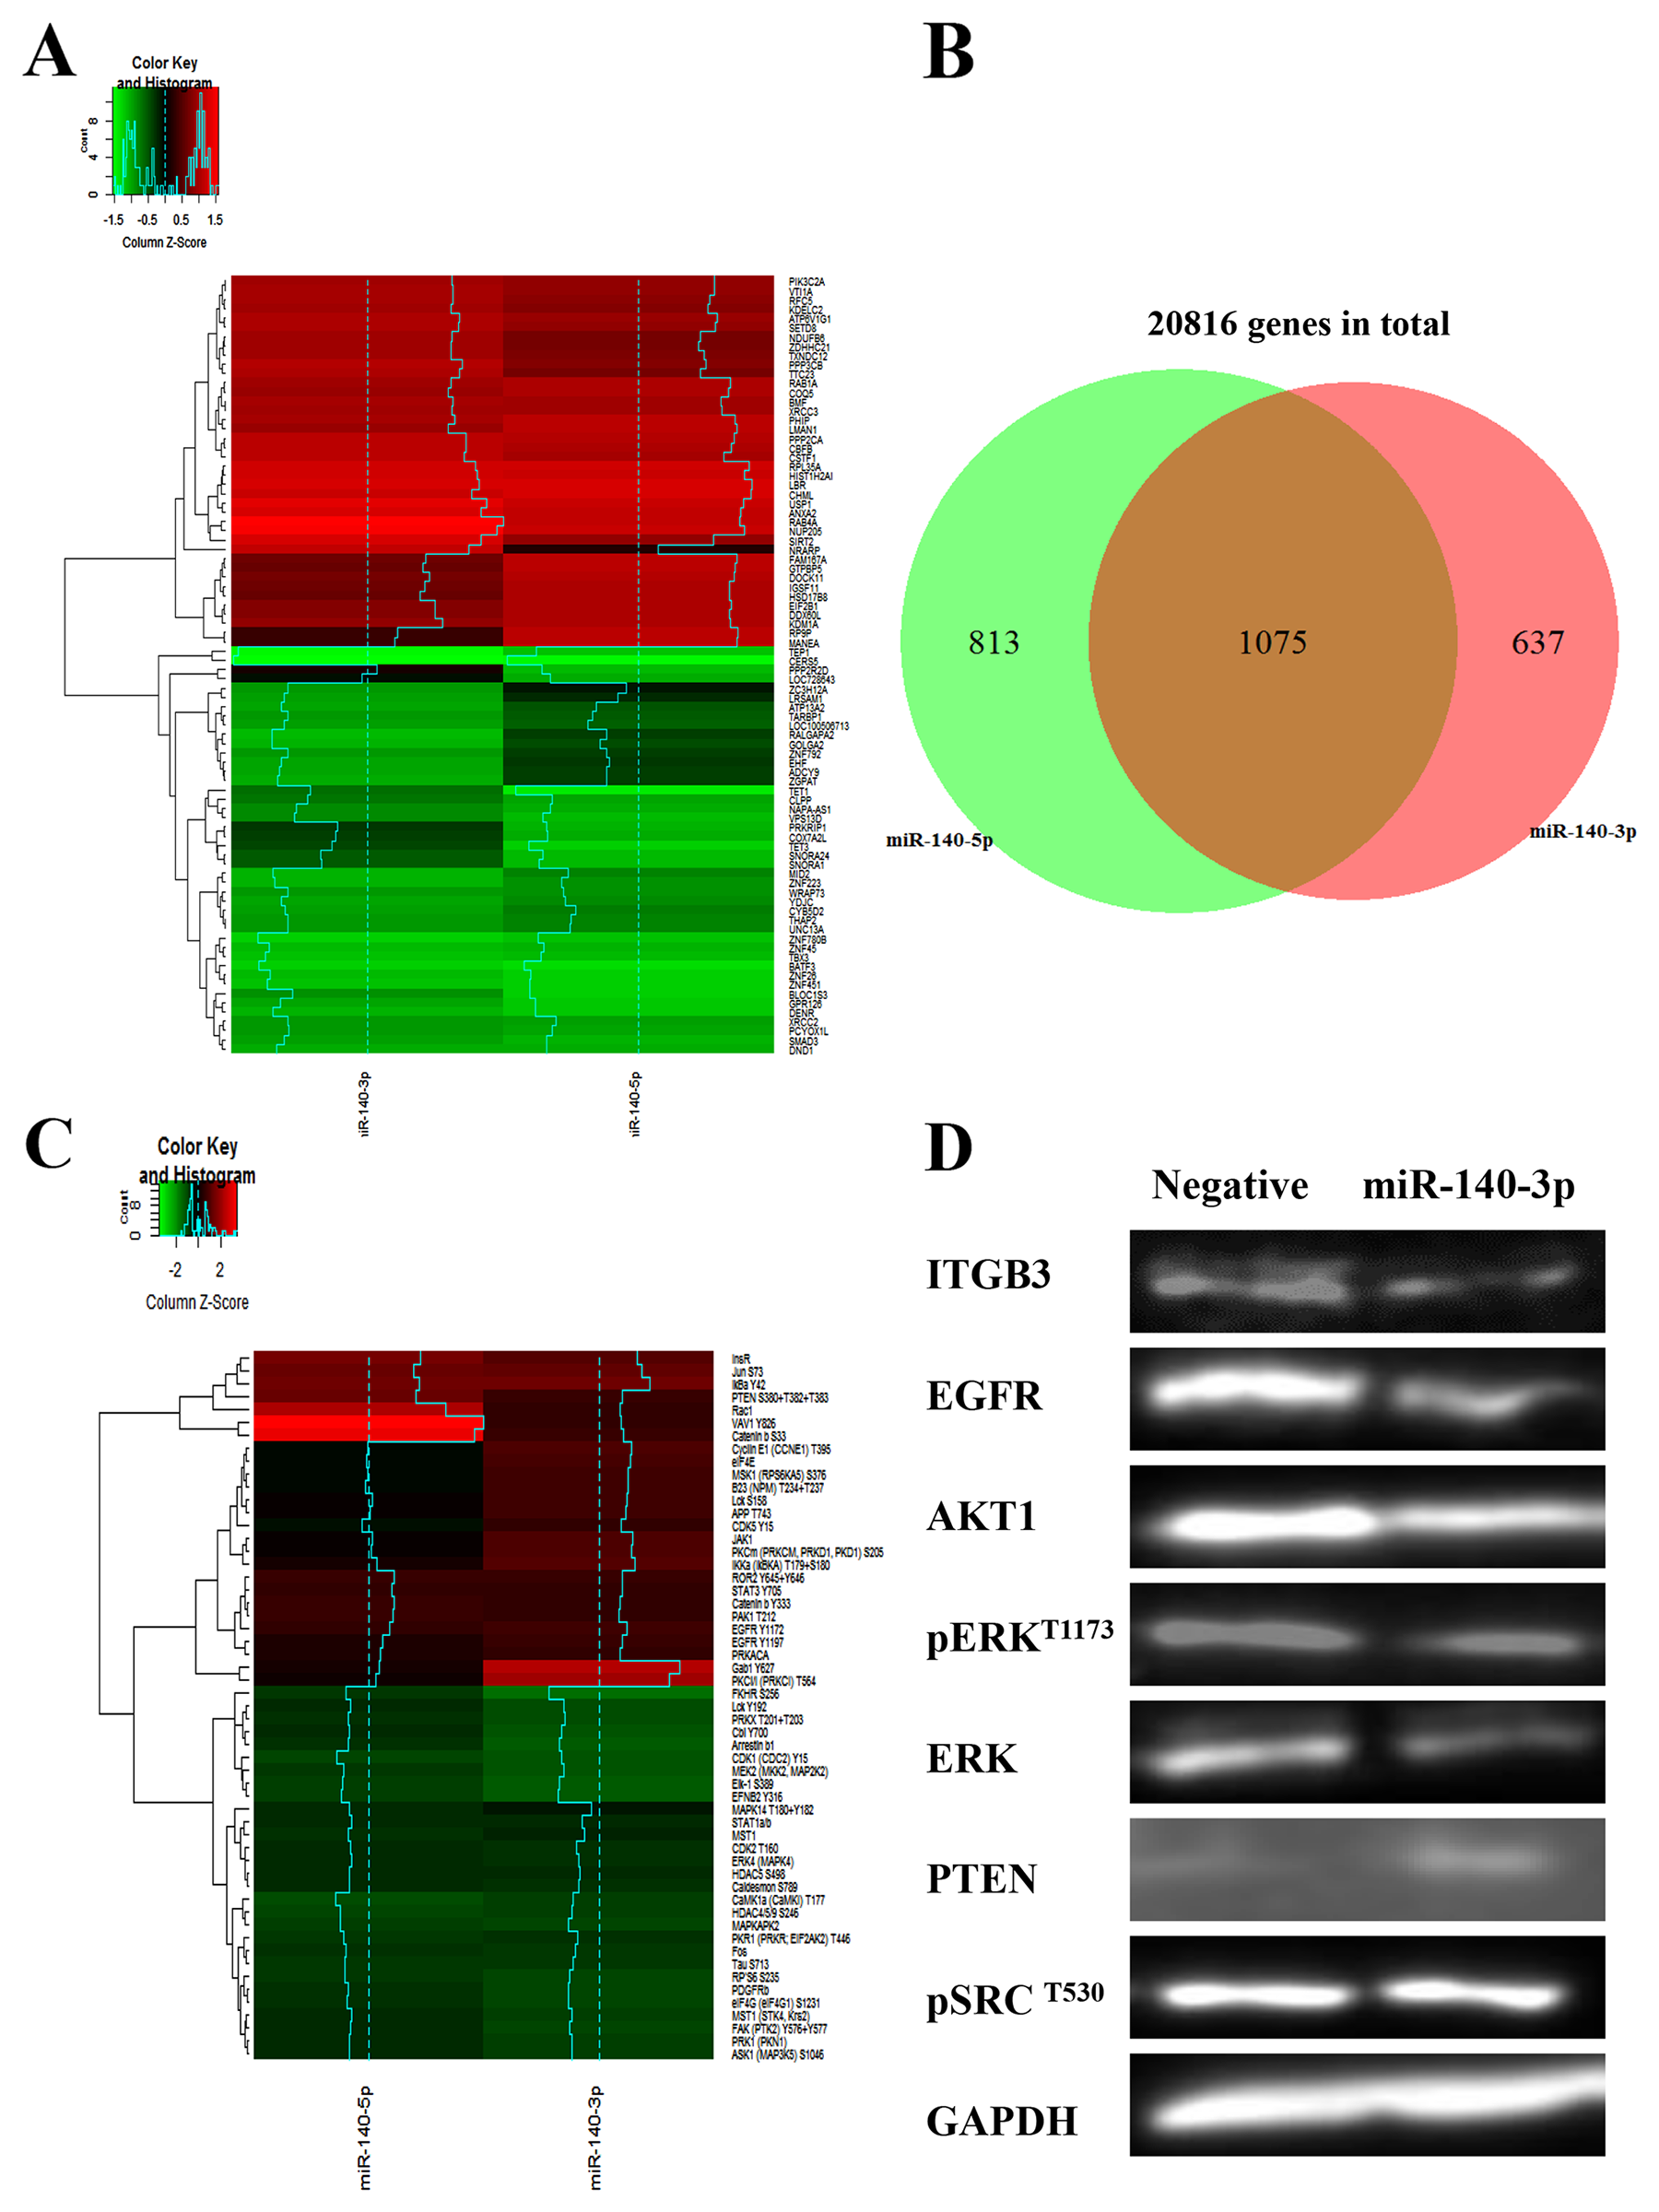 Distinctive gene regulation profiles and cell signalling pathways induced by two strands of miR-140.